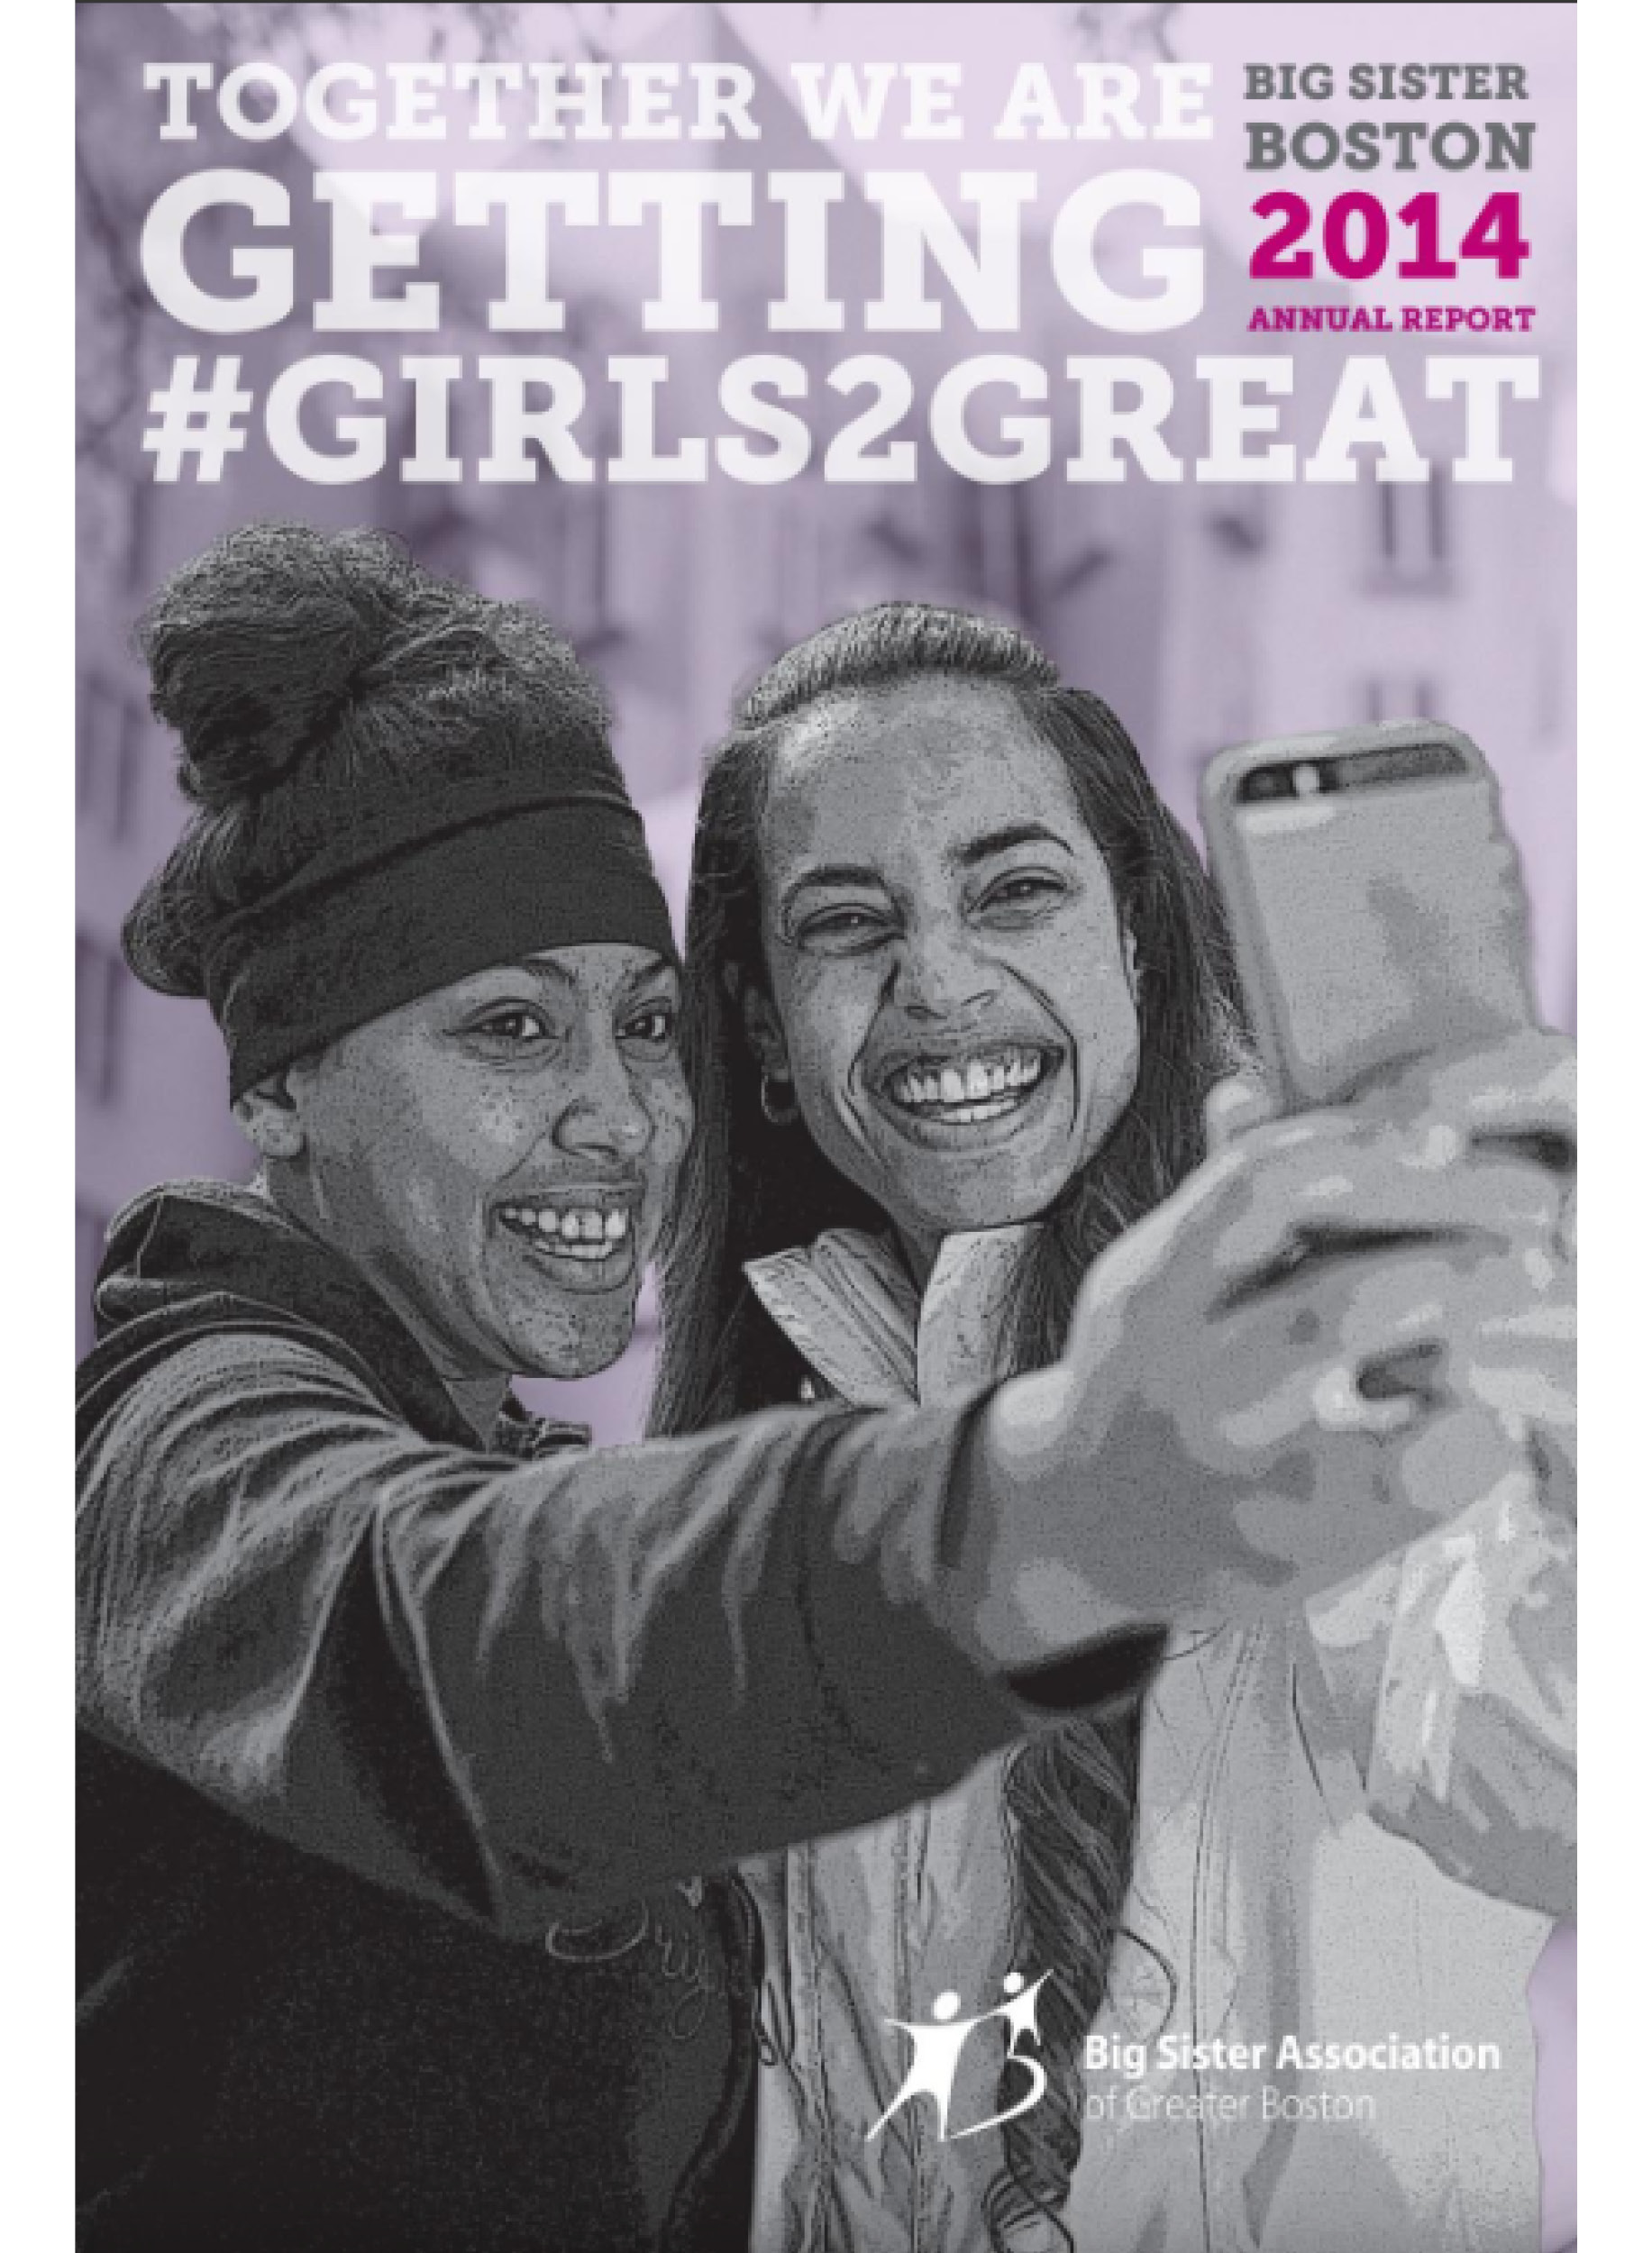 cover of the 2014 big sister annual report with two women taking a selfie